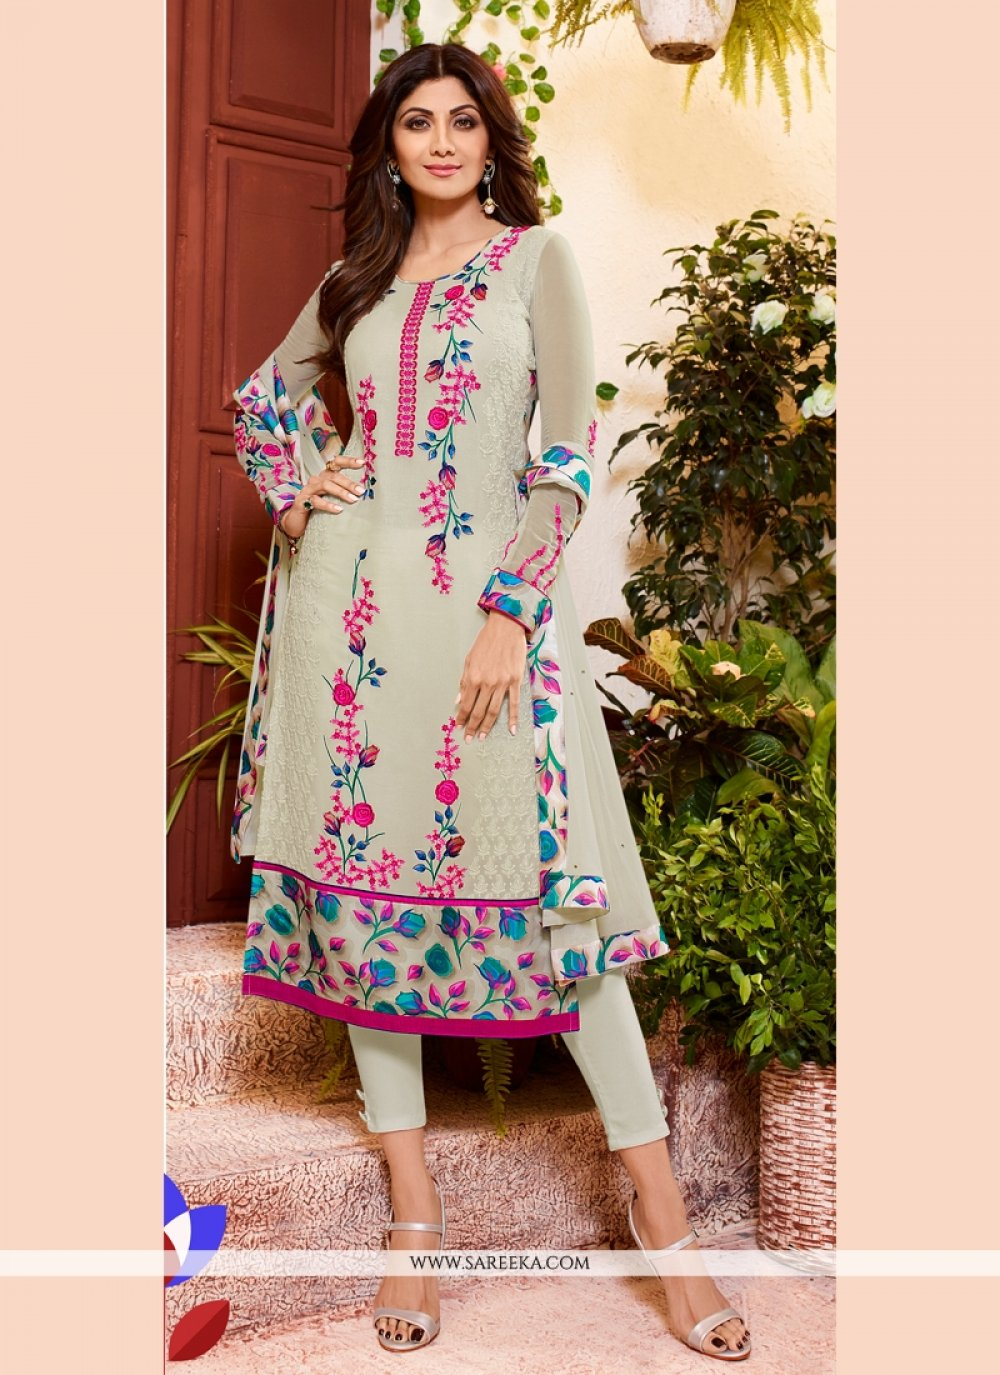 Shilpa Shetty Off White Churidar Designer Suit